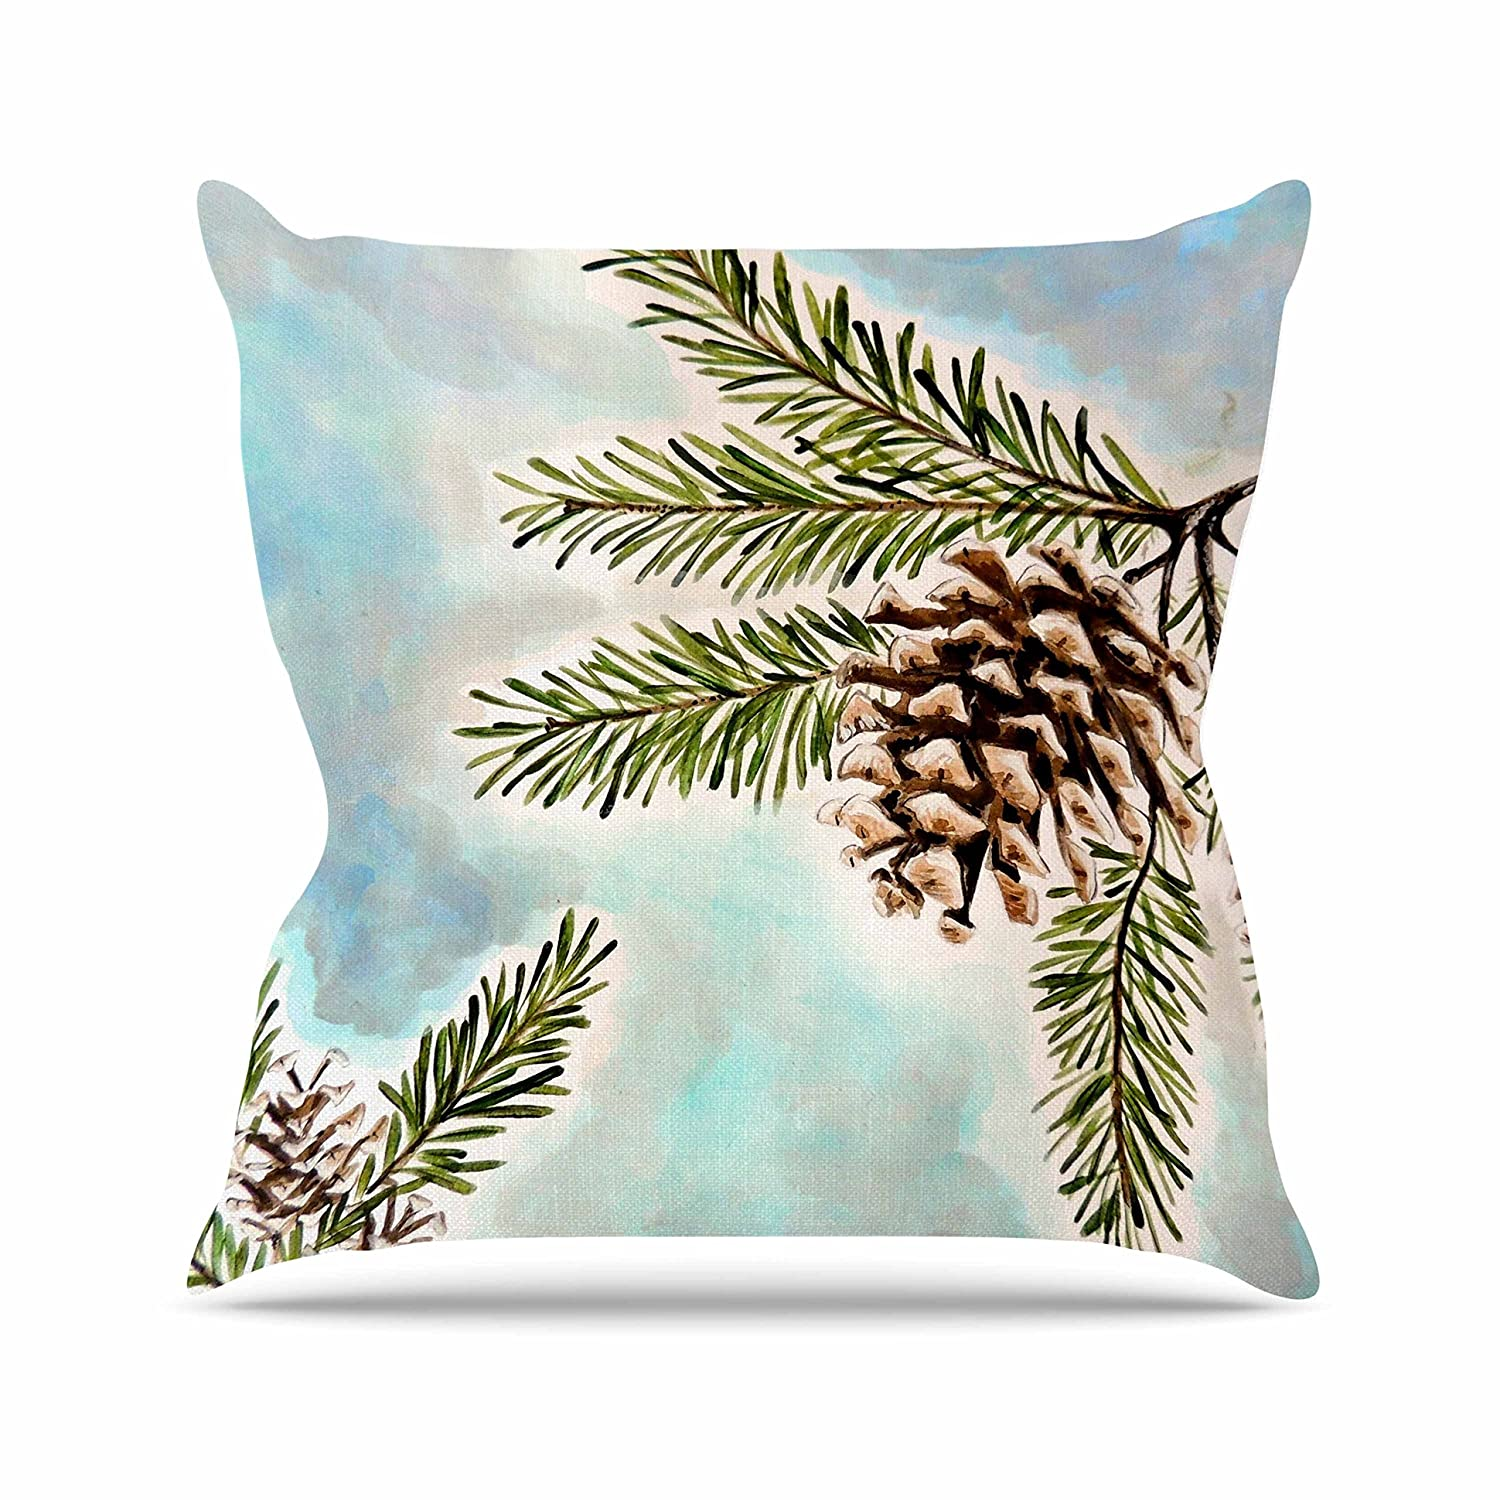 16 by 16 Kess InHouse Christen Treat Pinecones and Sky Blue Brown Throw Pillow